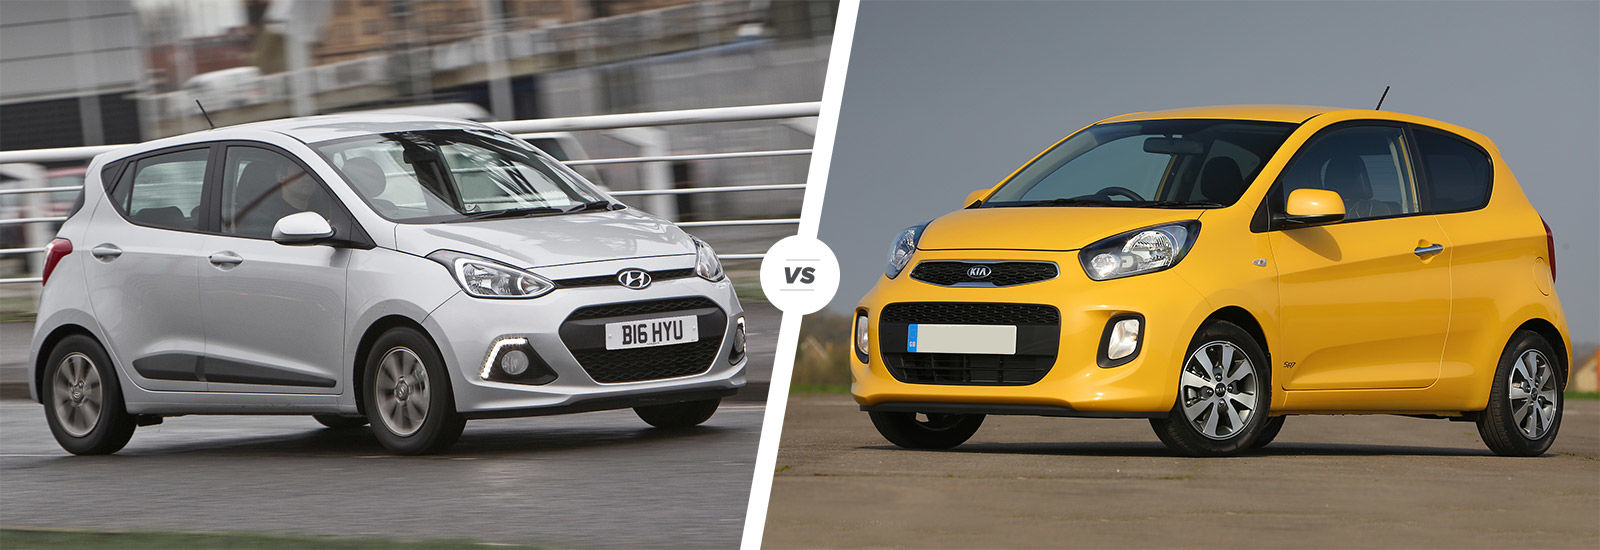 Hyundai I Vs Kia Picanto Comparison